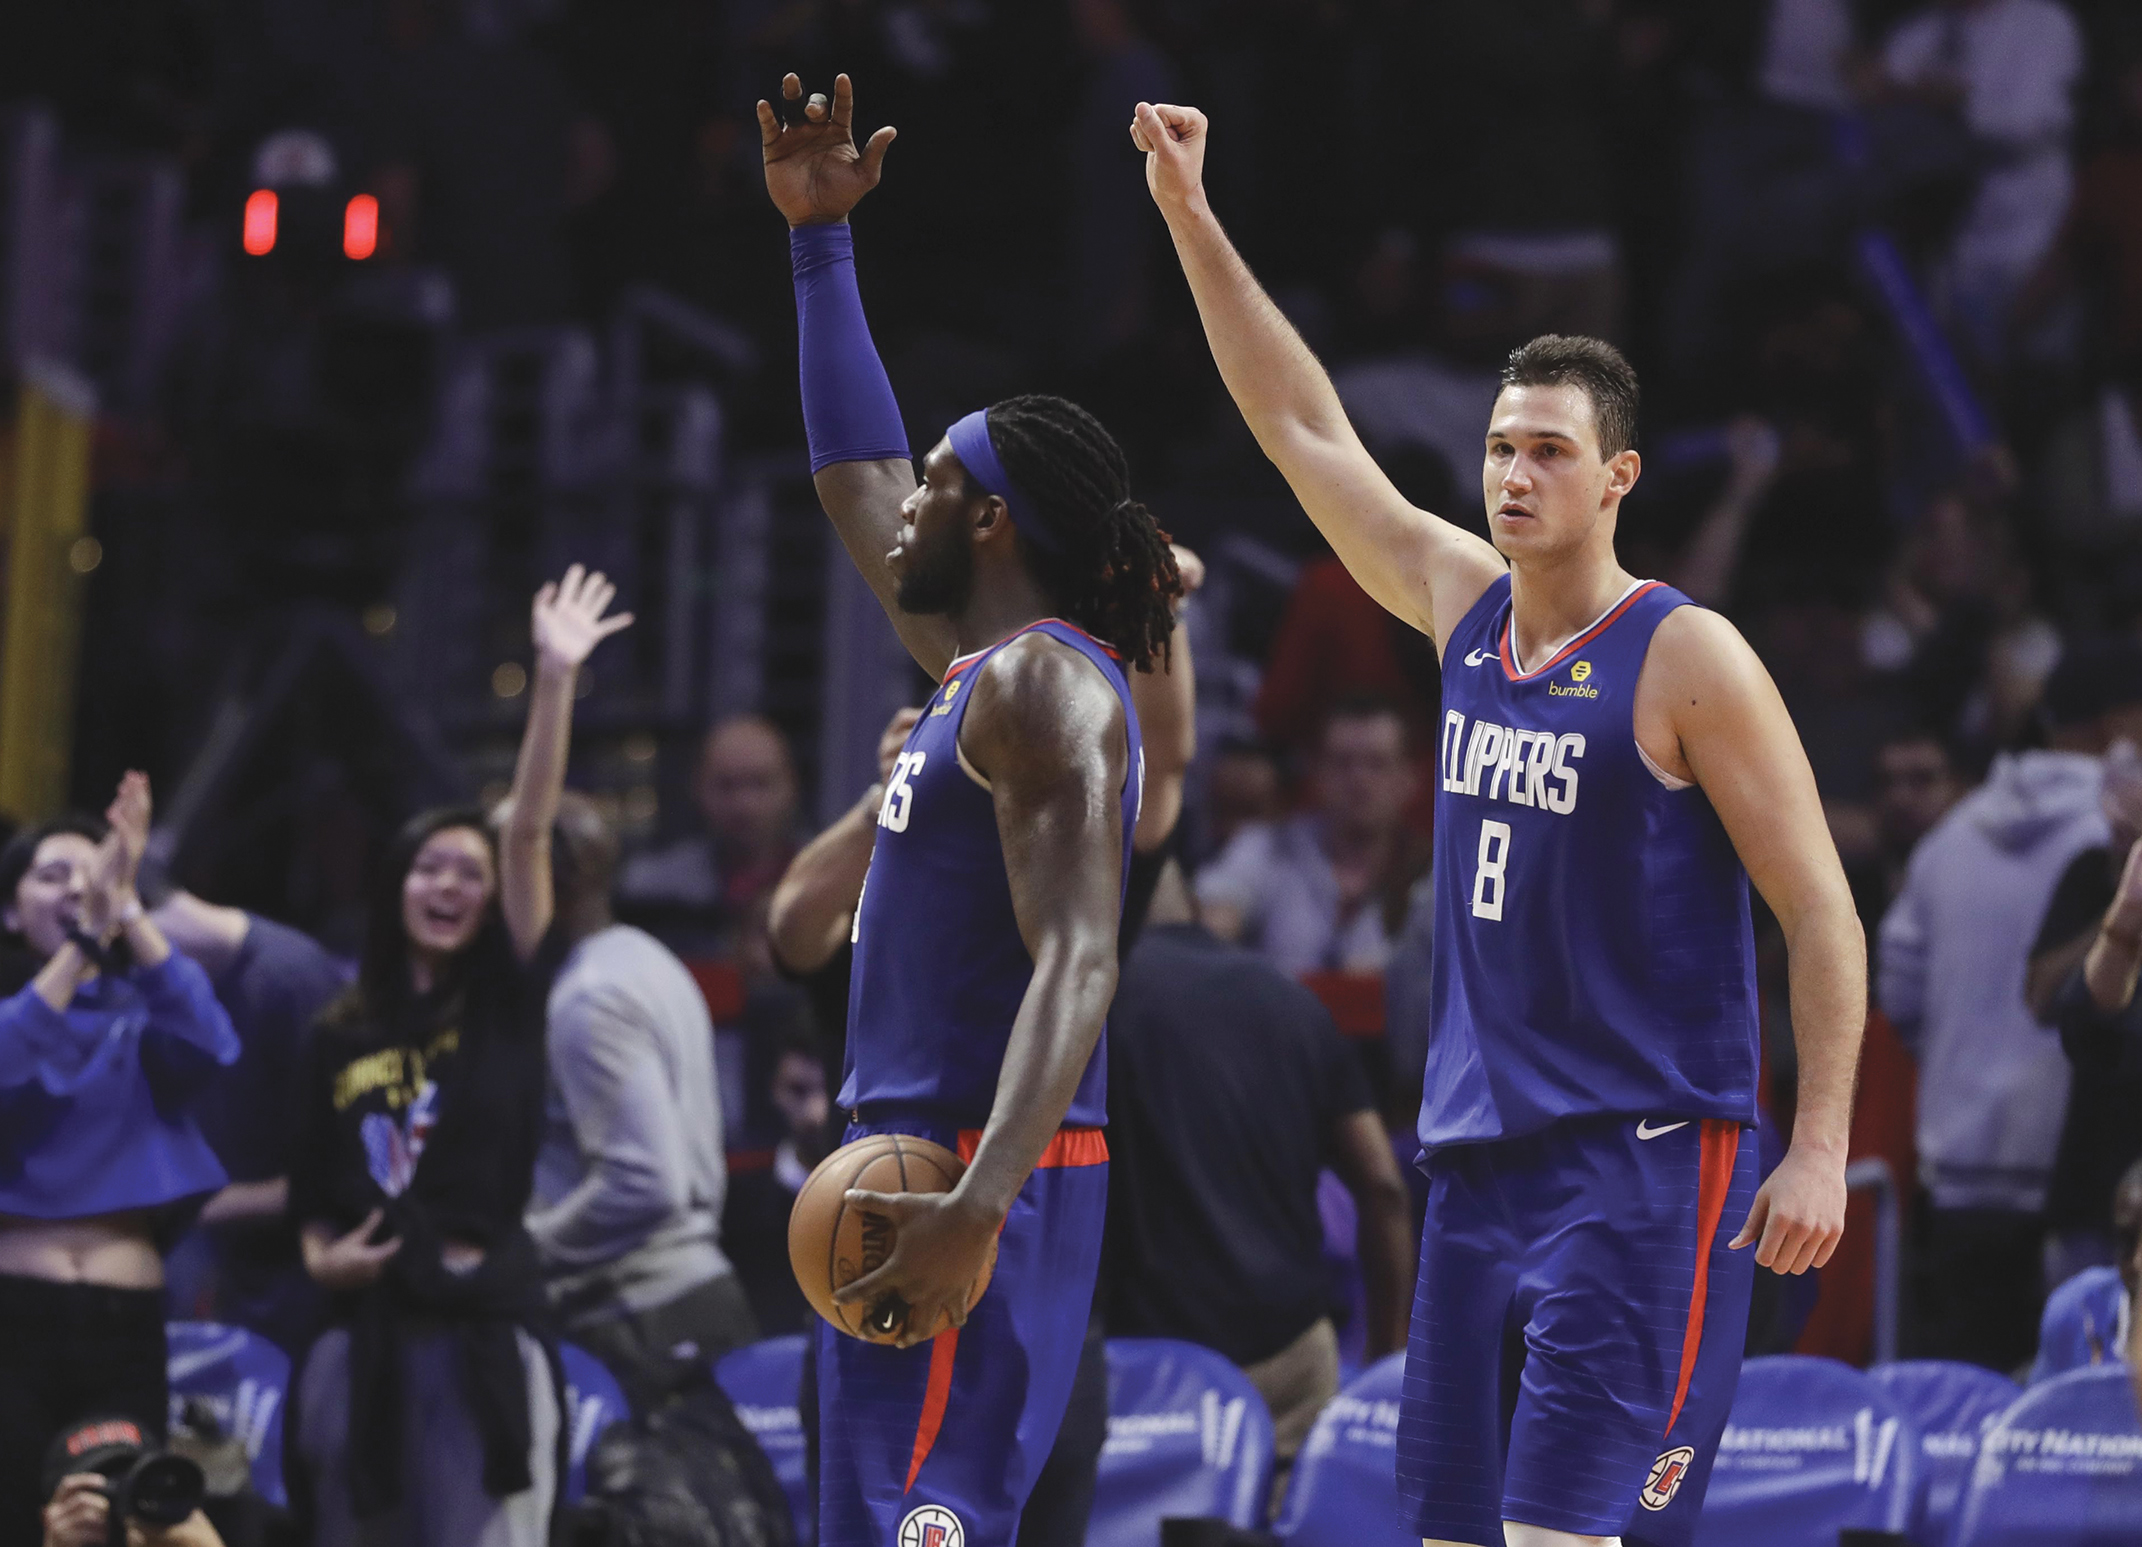 Los Angeles Clippers' Montrezl Harrell, left, and Danilo Gallinari, celebrate after a 112-107 overtime win over the Memphis Grizzlies earlier in the season, in Los Angeles. (Marcio Jose Sanchez / Associated Press)